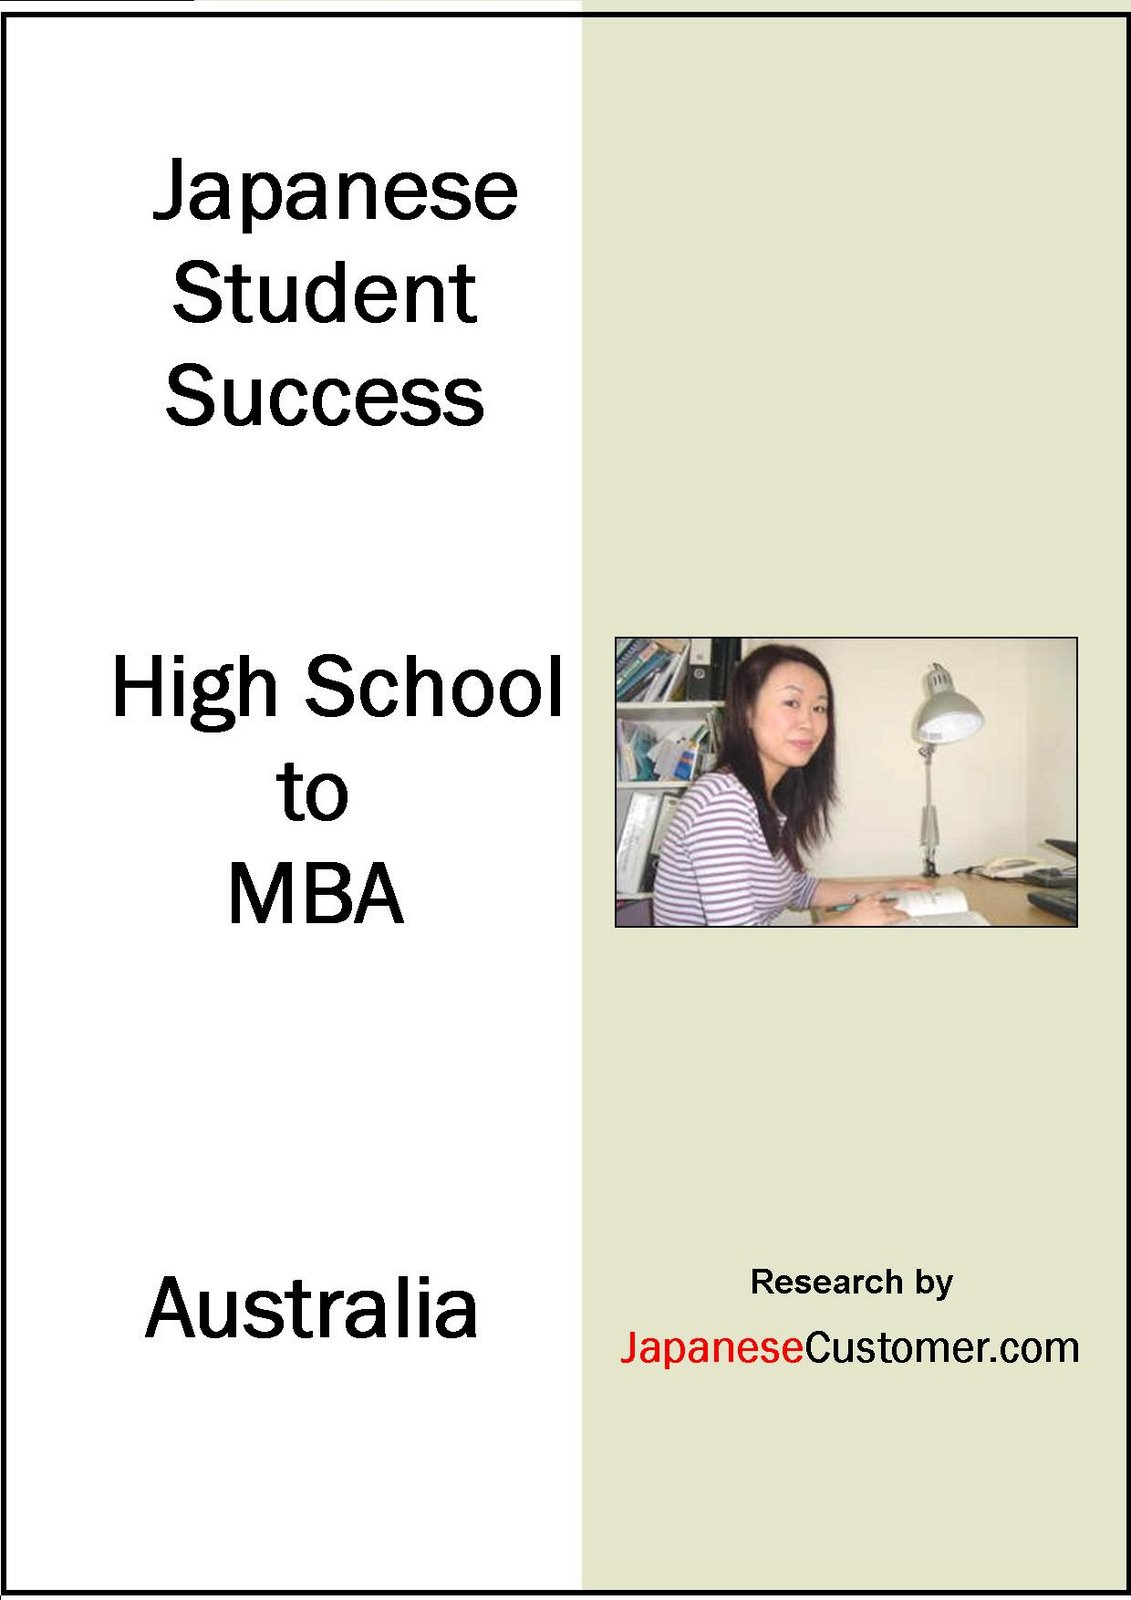 http://www.scribd.com/doc/190027019/Japanese-Student-Success-High-School-to-MBA-Australia-by-Peter-Hanami